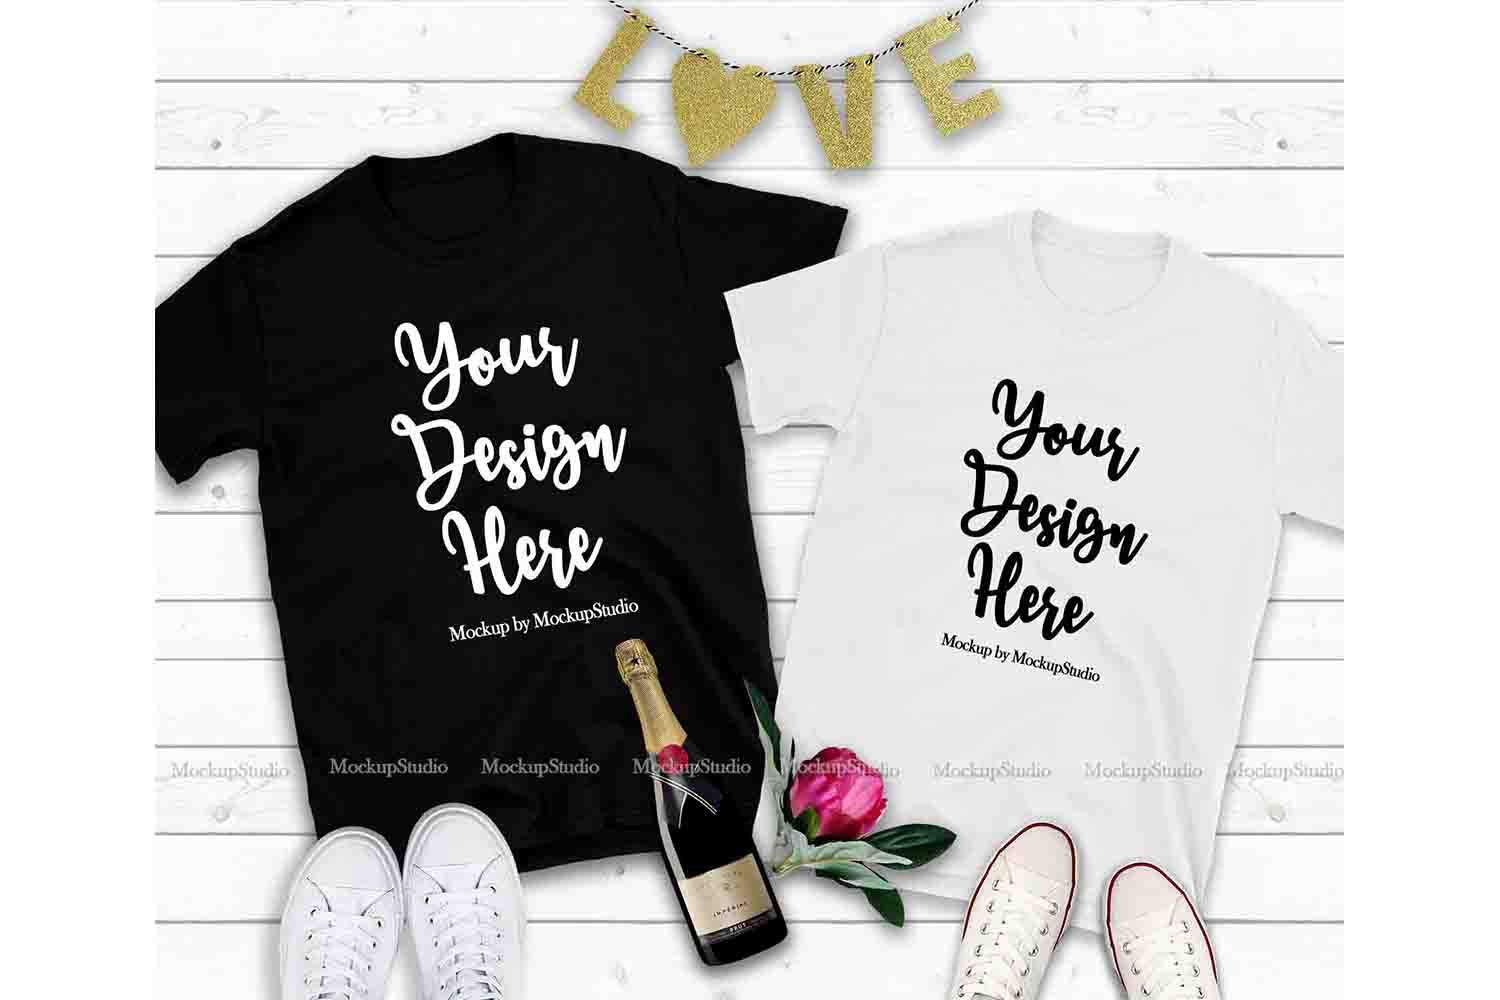 Download Couple Two T Shirts Mockup Valentine Shirt Mock Up Flat Lay 183340 Clothing Design Bundles Shirt Mockup Design Mockup Free Tshirt Mockup